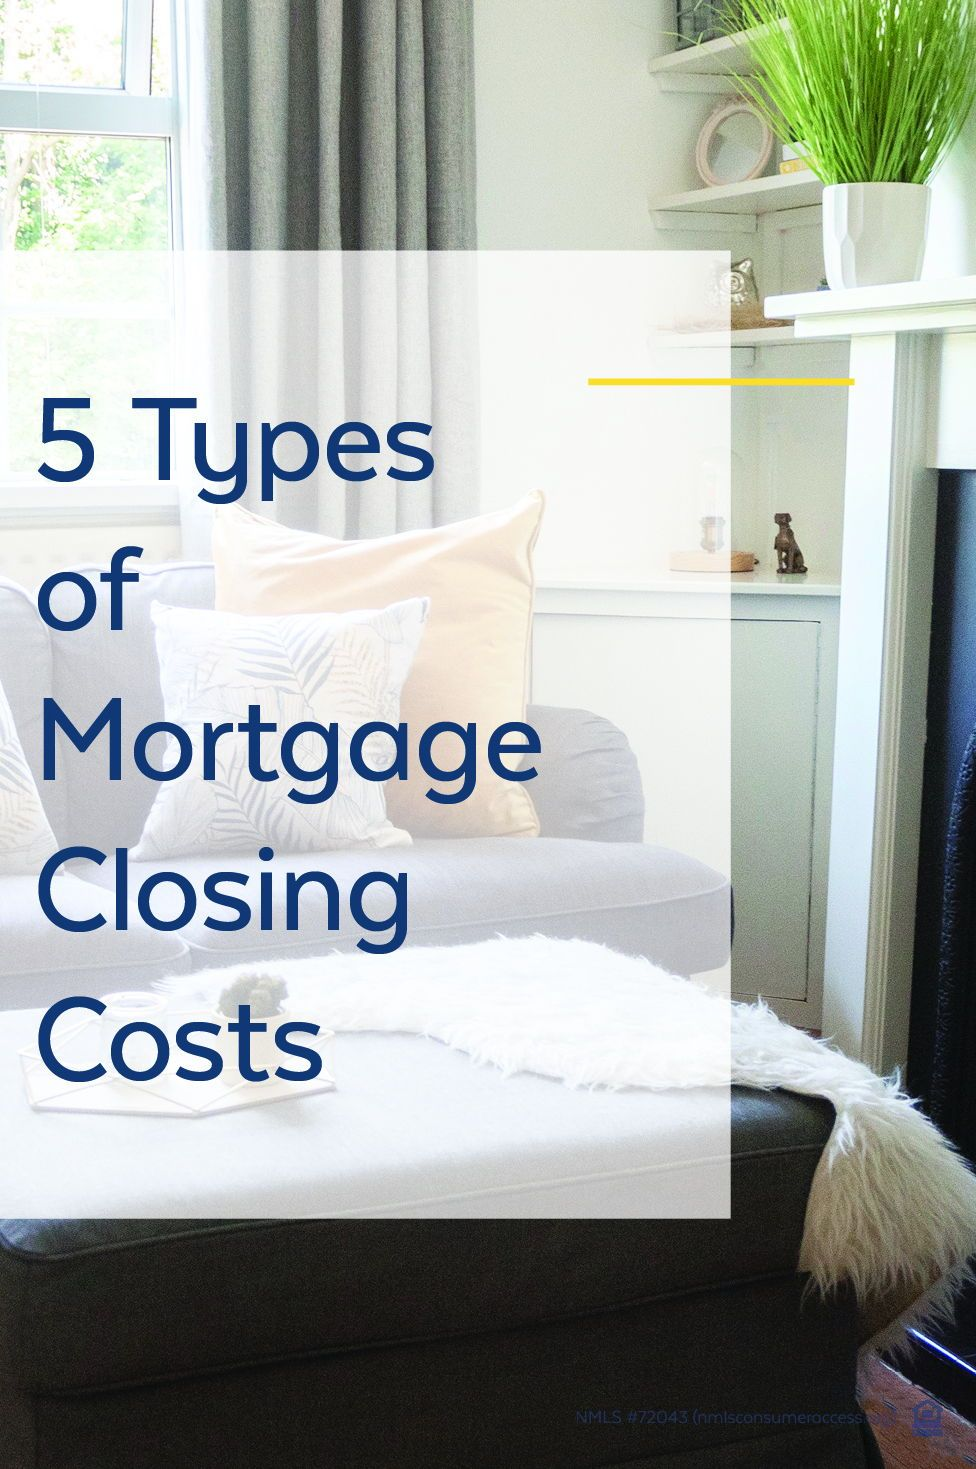 Mortgage closing costs 5 types you need to know in 2020